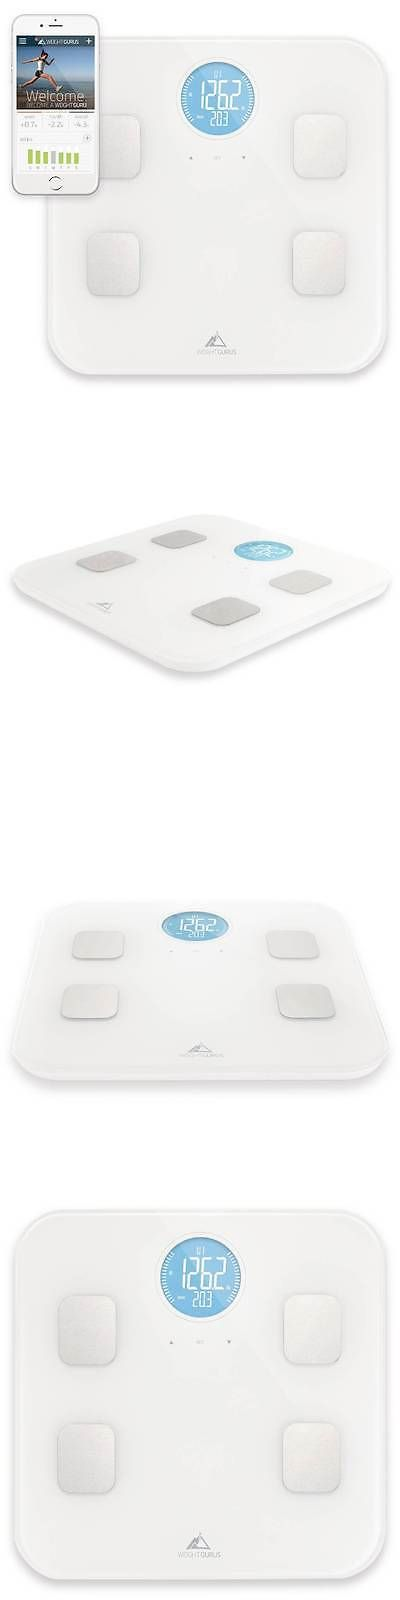 Scales: Cheap!!! Weight Gurus Bluetooth Body Composition Scale - White BUY IT NOW ONLY: $38.0